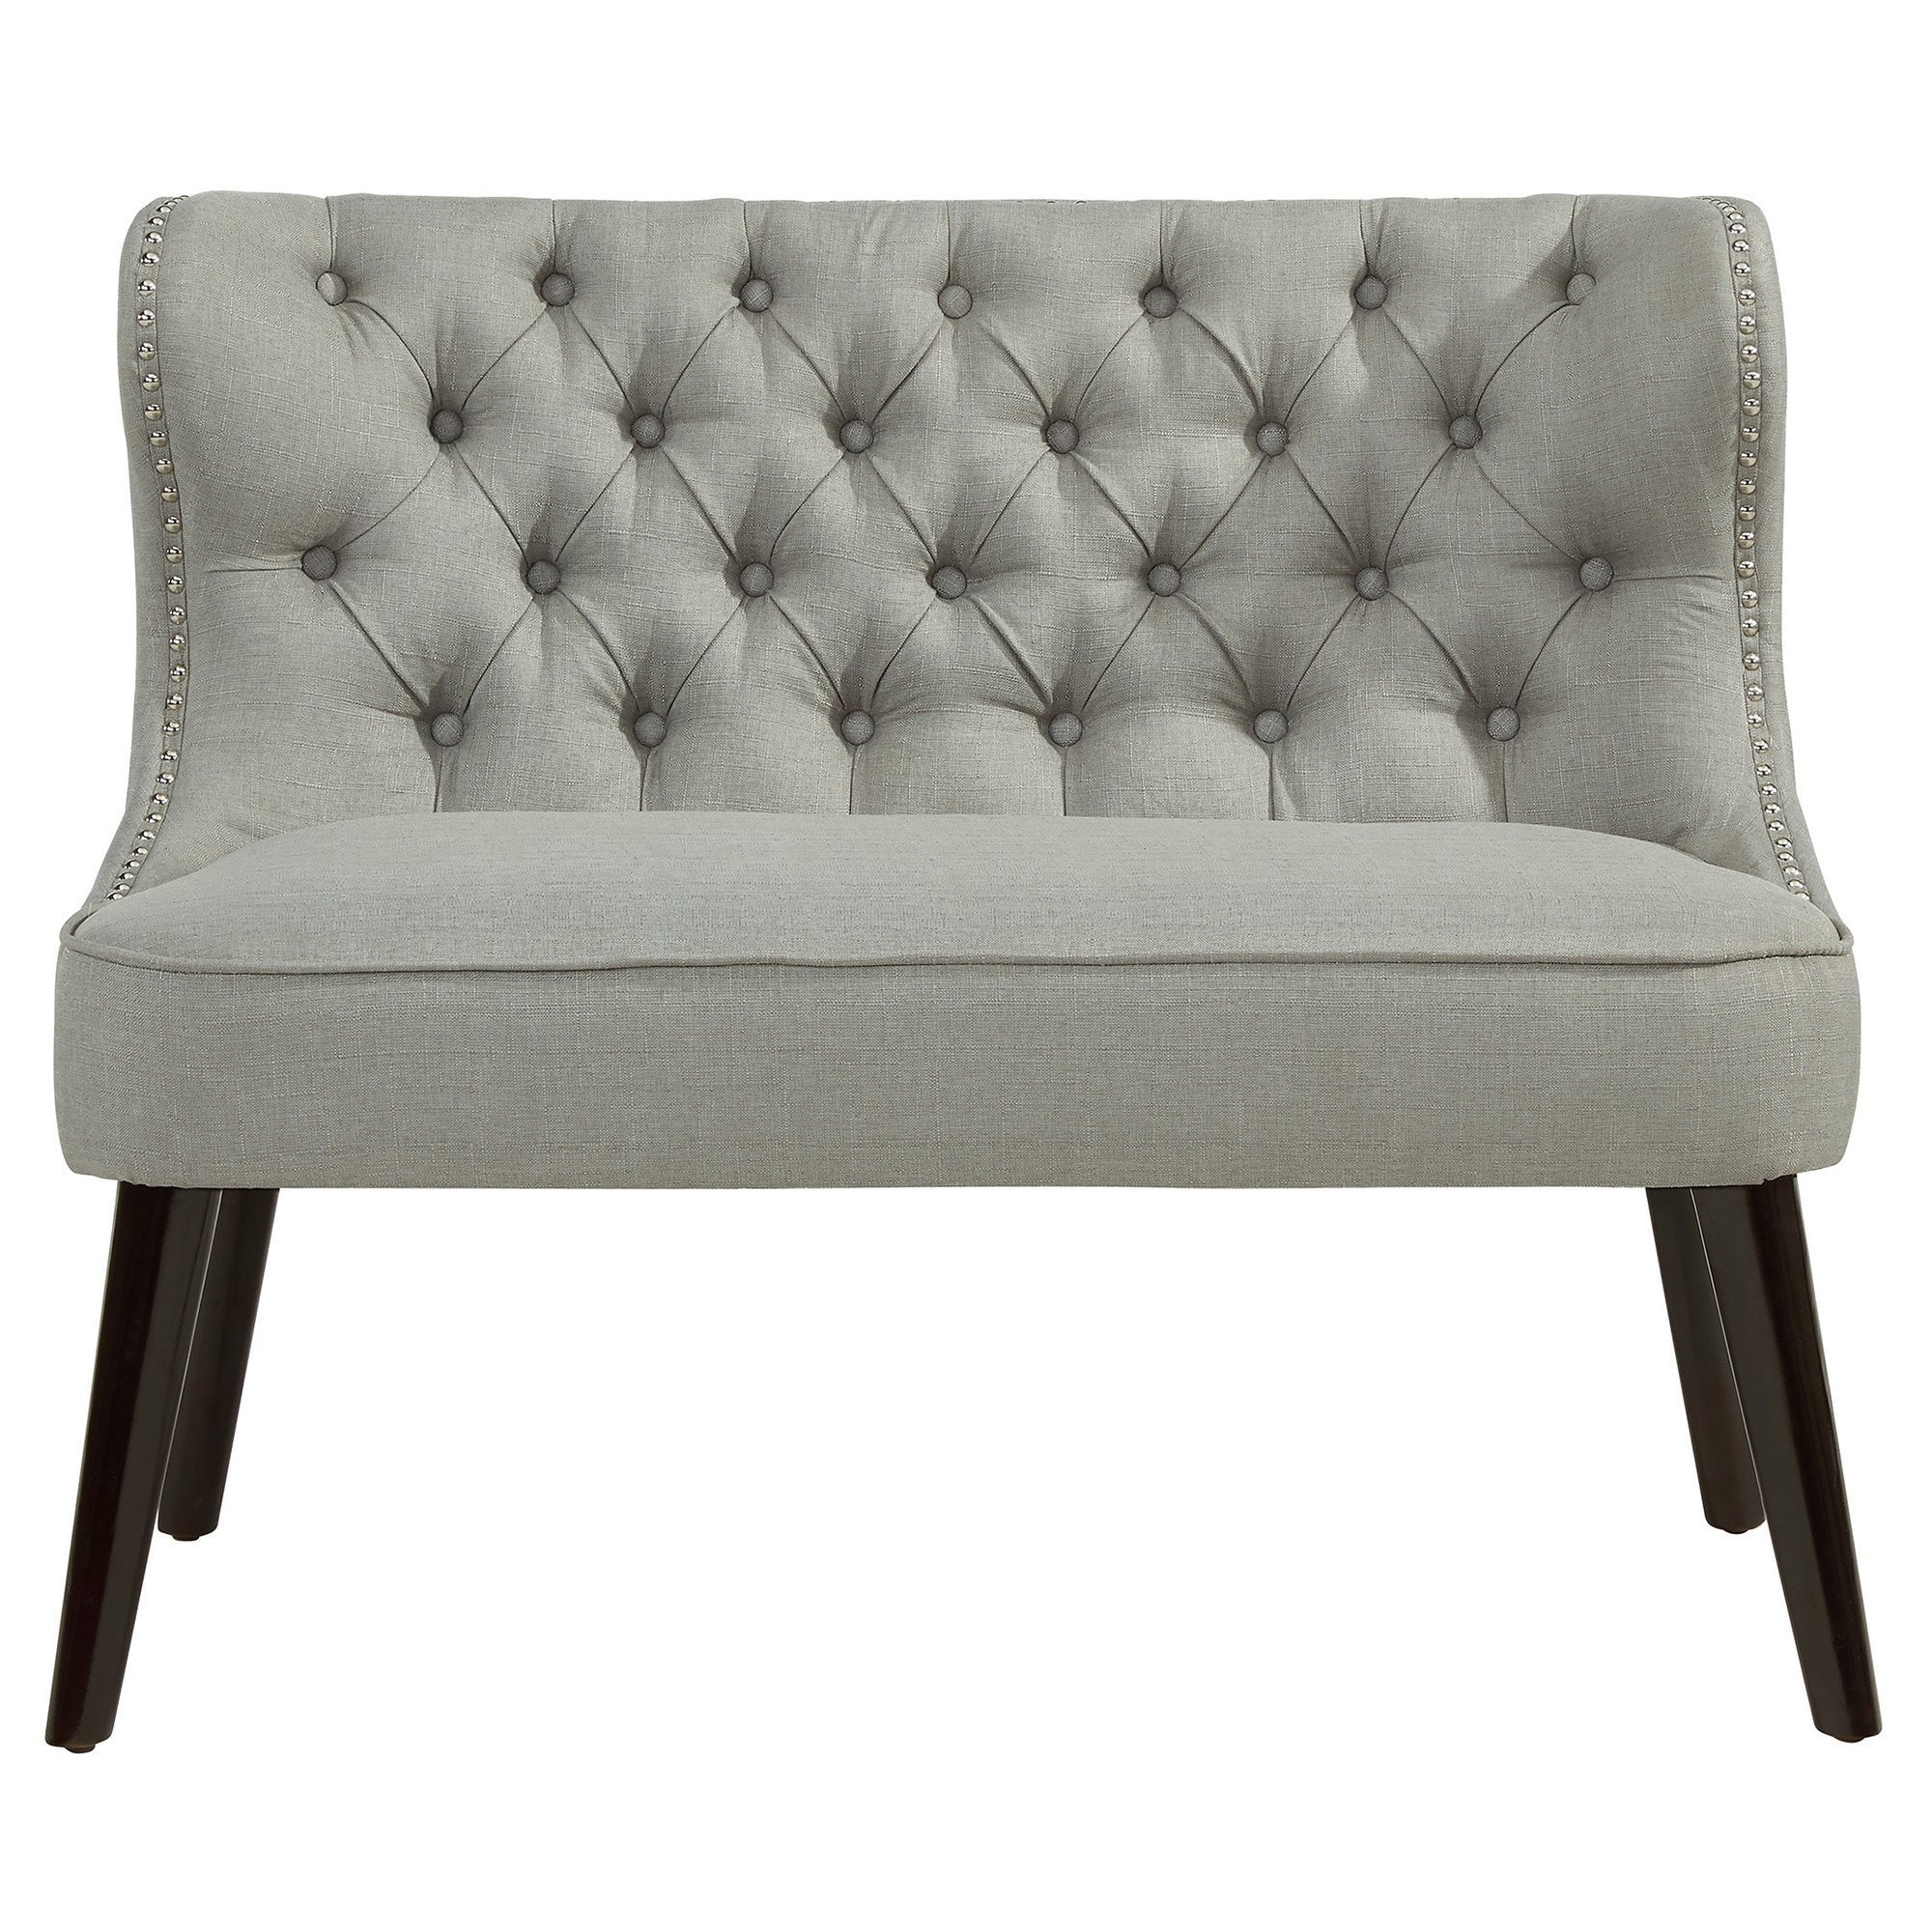 Best House Of Hampton Doring Tufted Wing Back Settee Bedroom With Pictures